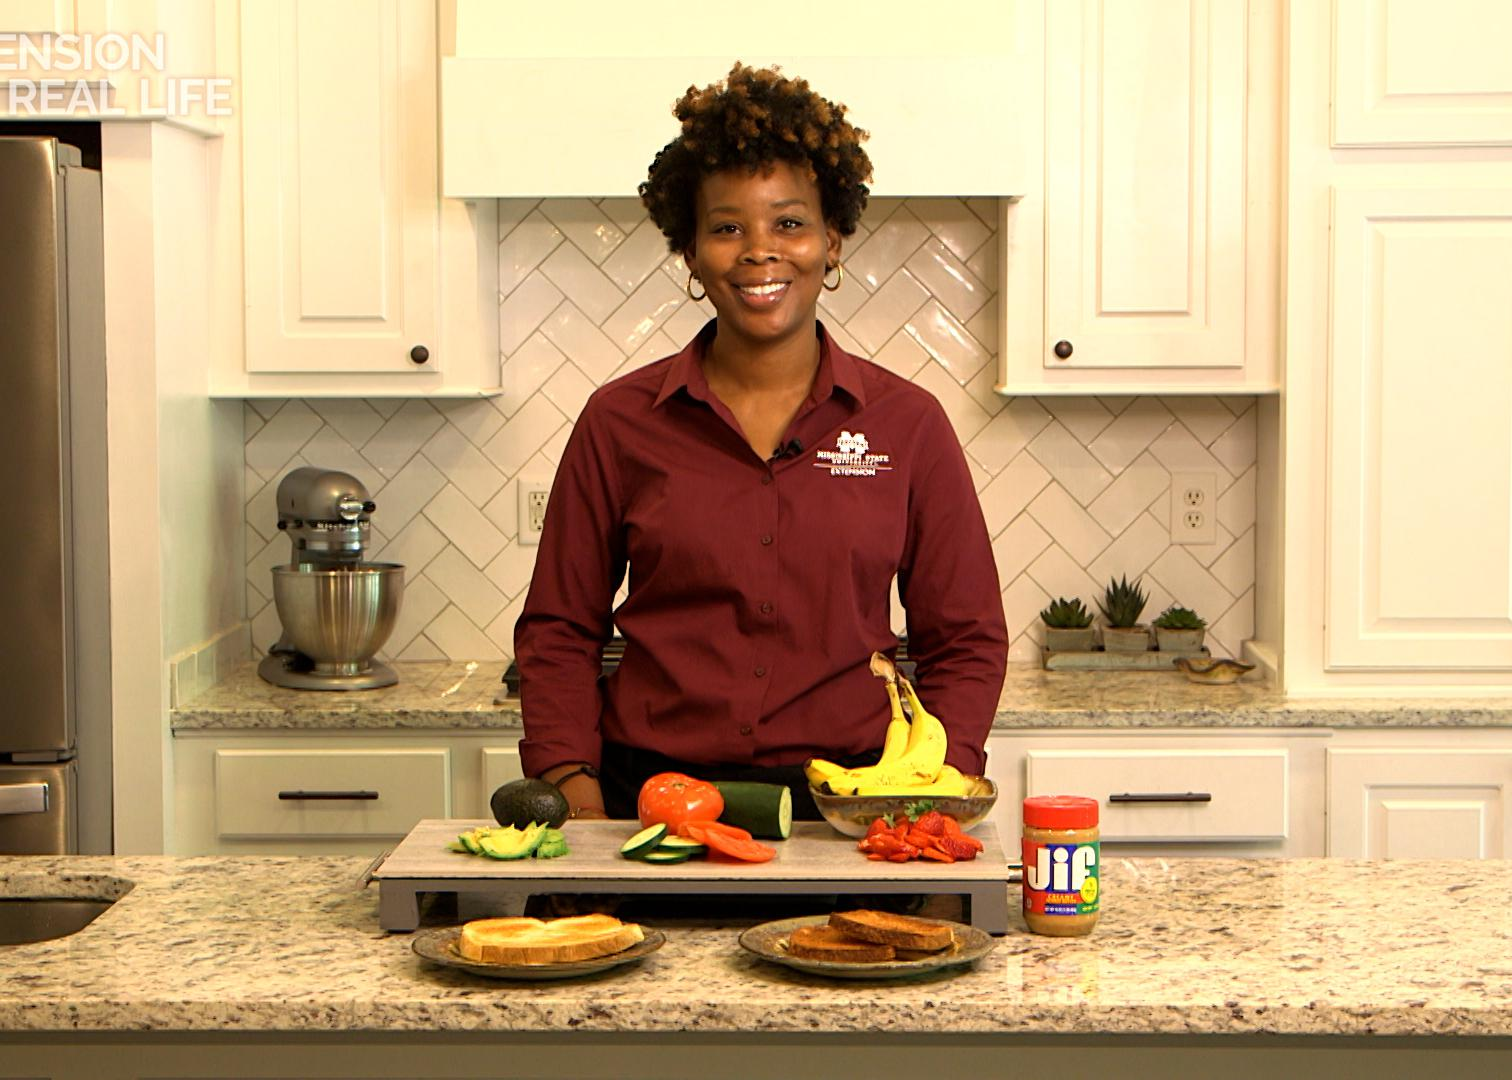 A woman stands behind a kitchen counter of breakfast toast and toppings.